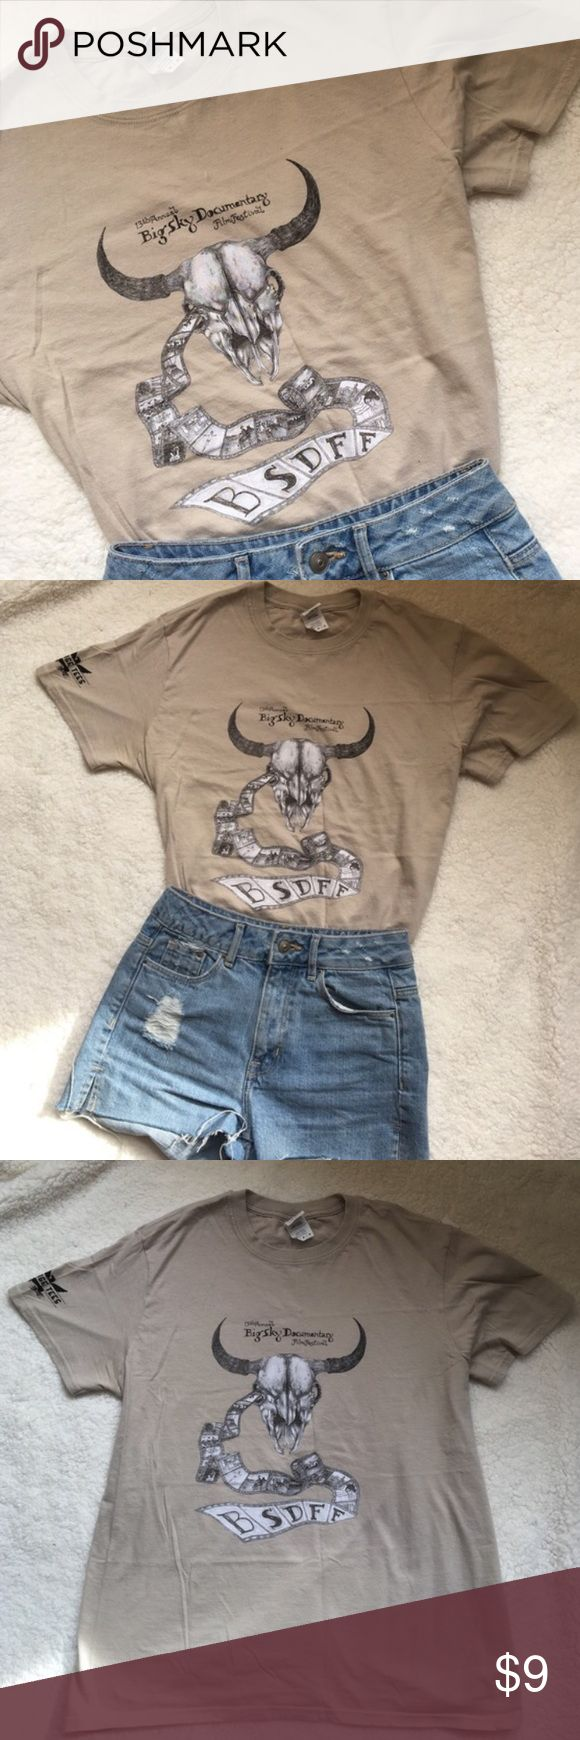 Western Grunge Film Festival Tee Super cool shirt from the Big Sky Documentary Film Festival in Missoula, MT. Back says Volunteer. Features a longhorn skull and movie film. Men's/Unisex Medium. Shoulder days garage tees with an eagle. Cheaper on Ⓜ️ Vintage Tops Tees - Short Sleeve